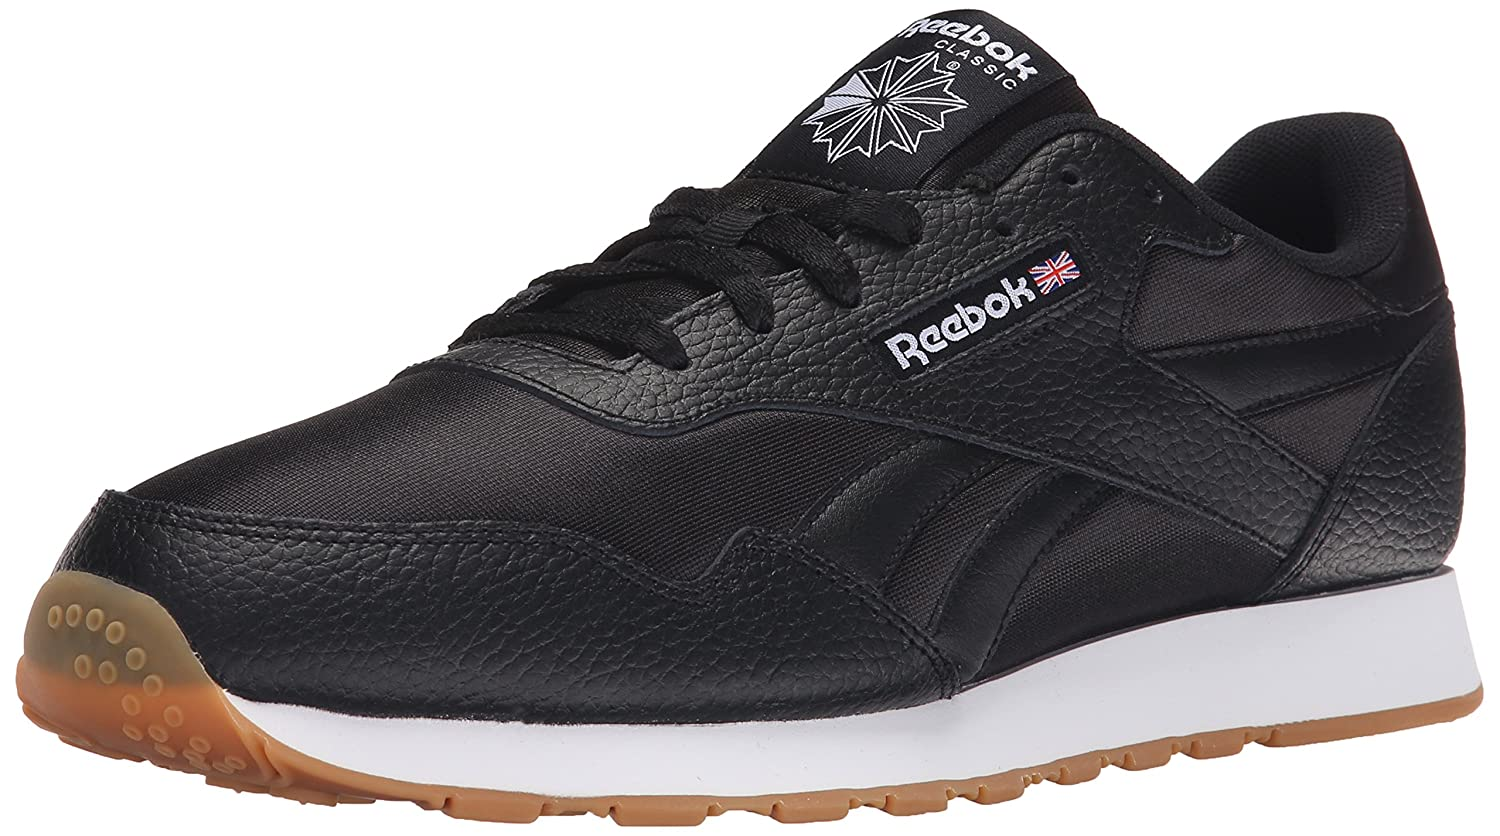 a3a32578 Reebok Men's Royal Nylon Gum Classic Shoe